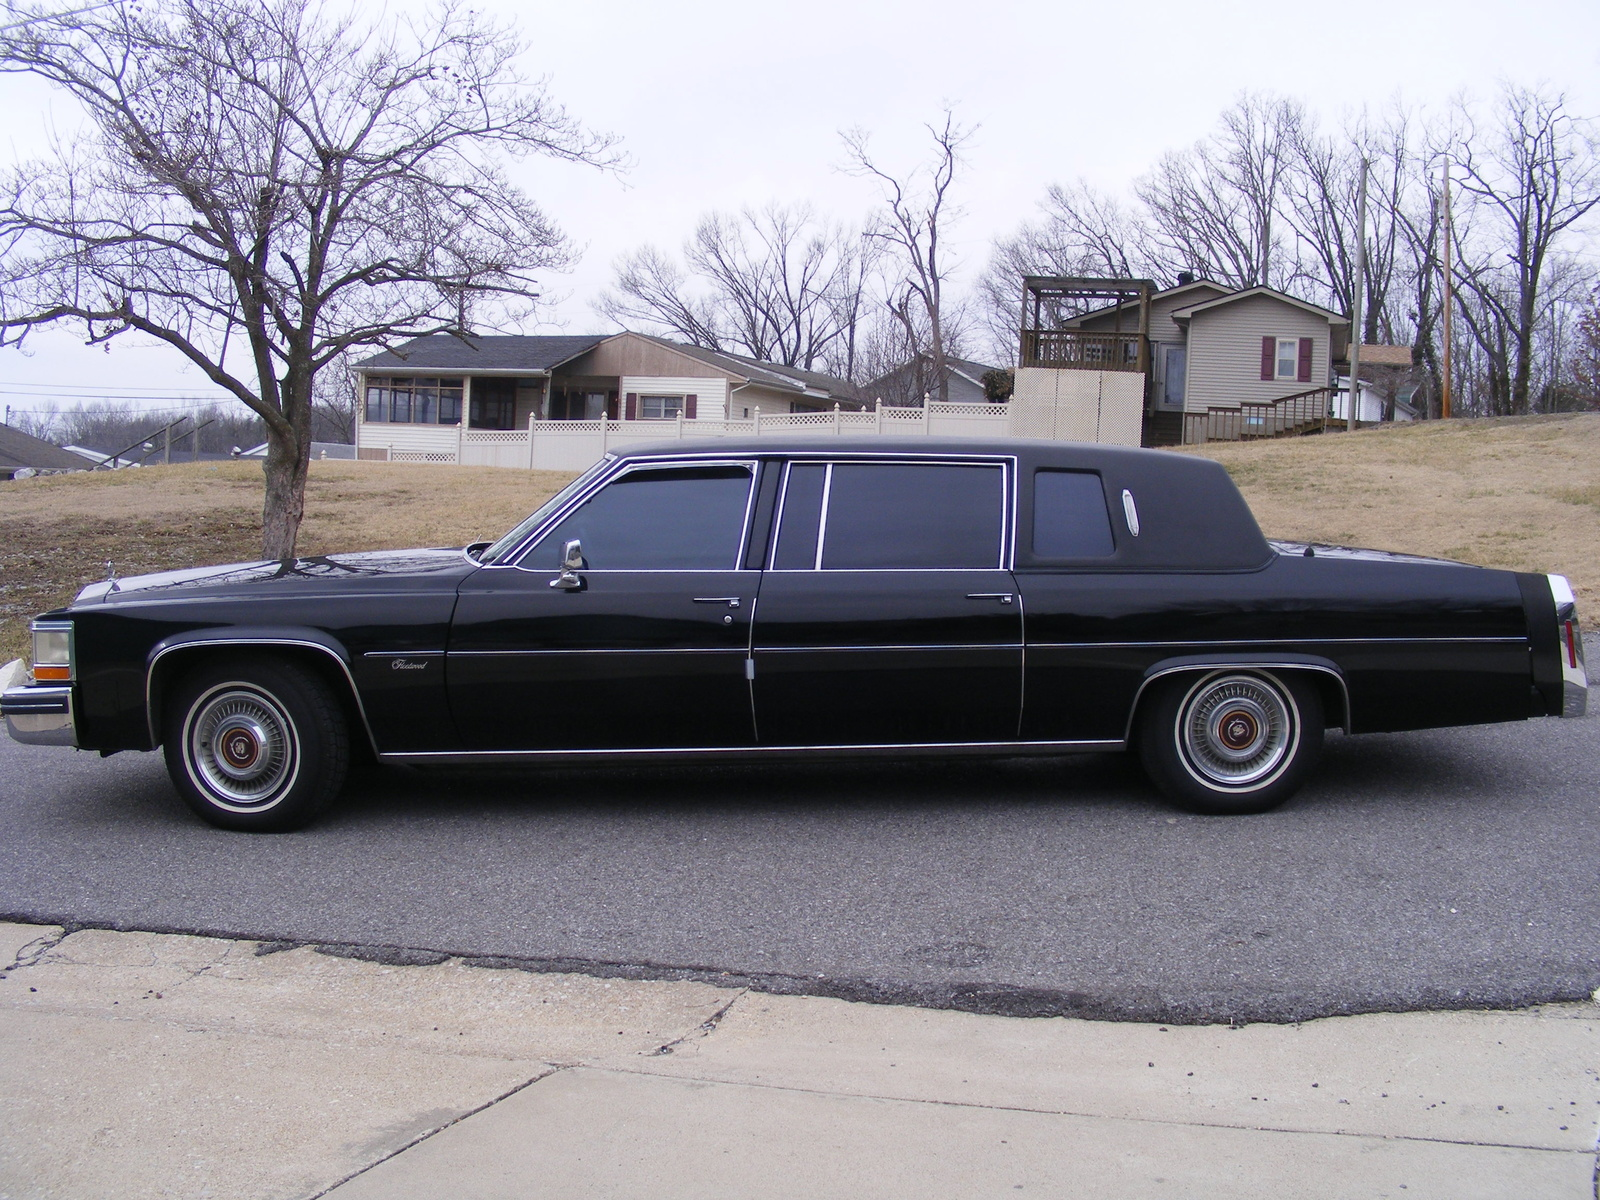 Travel Back Through Sedan History furthermore Index5 moreover 236509417905056598 together with Lincoln Town Car 1990 furthermore 2000 Cadillac Deville Pictures C1488 pi36862083. on 1980 lincoln town car